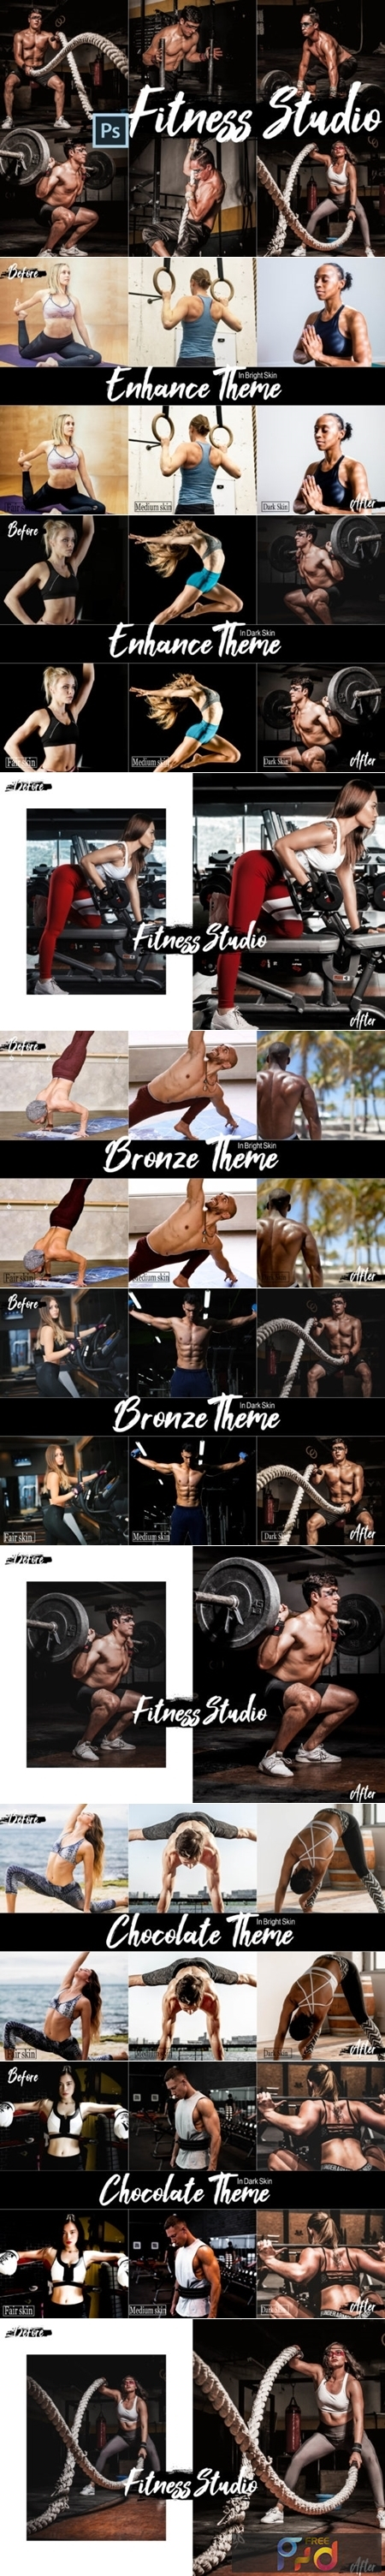 Fitness Studio Desktop Lightroom Presets 2449228 1